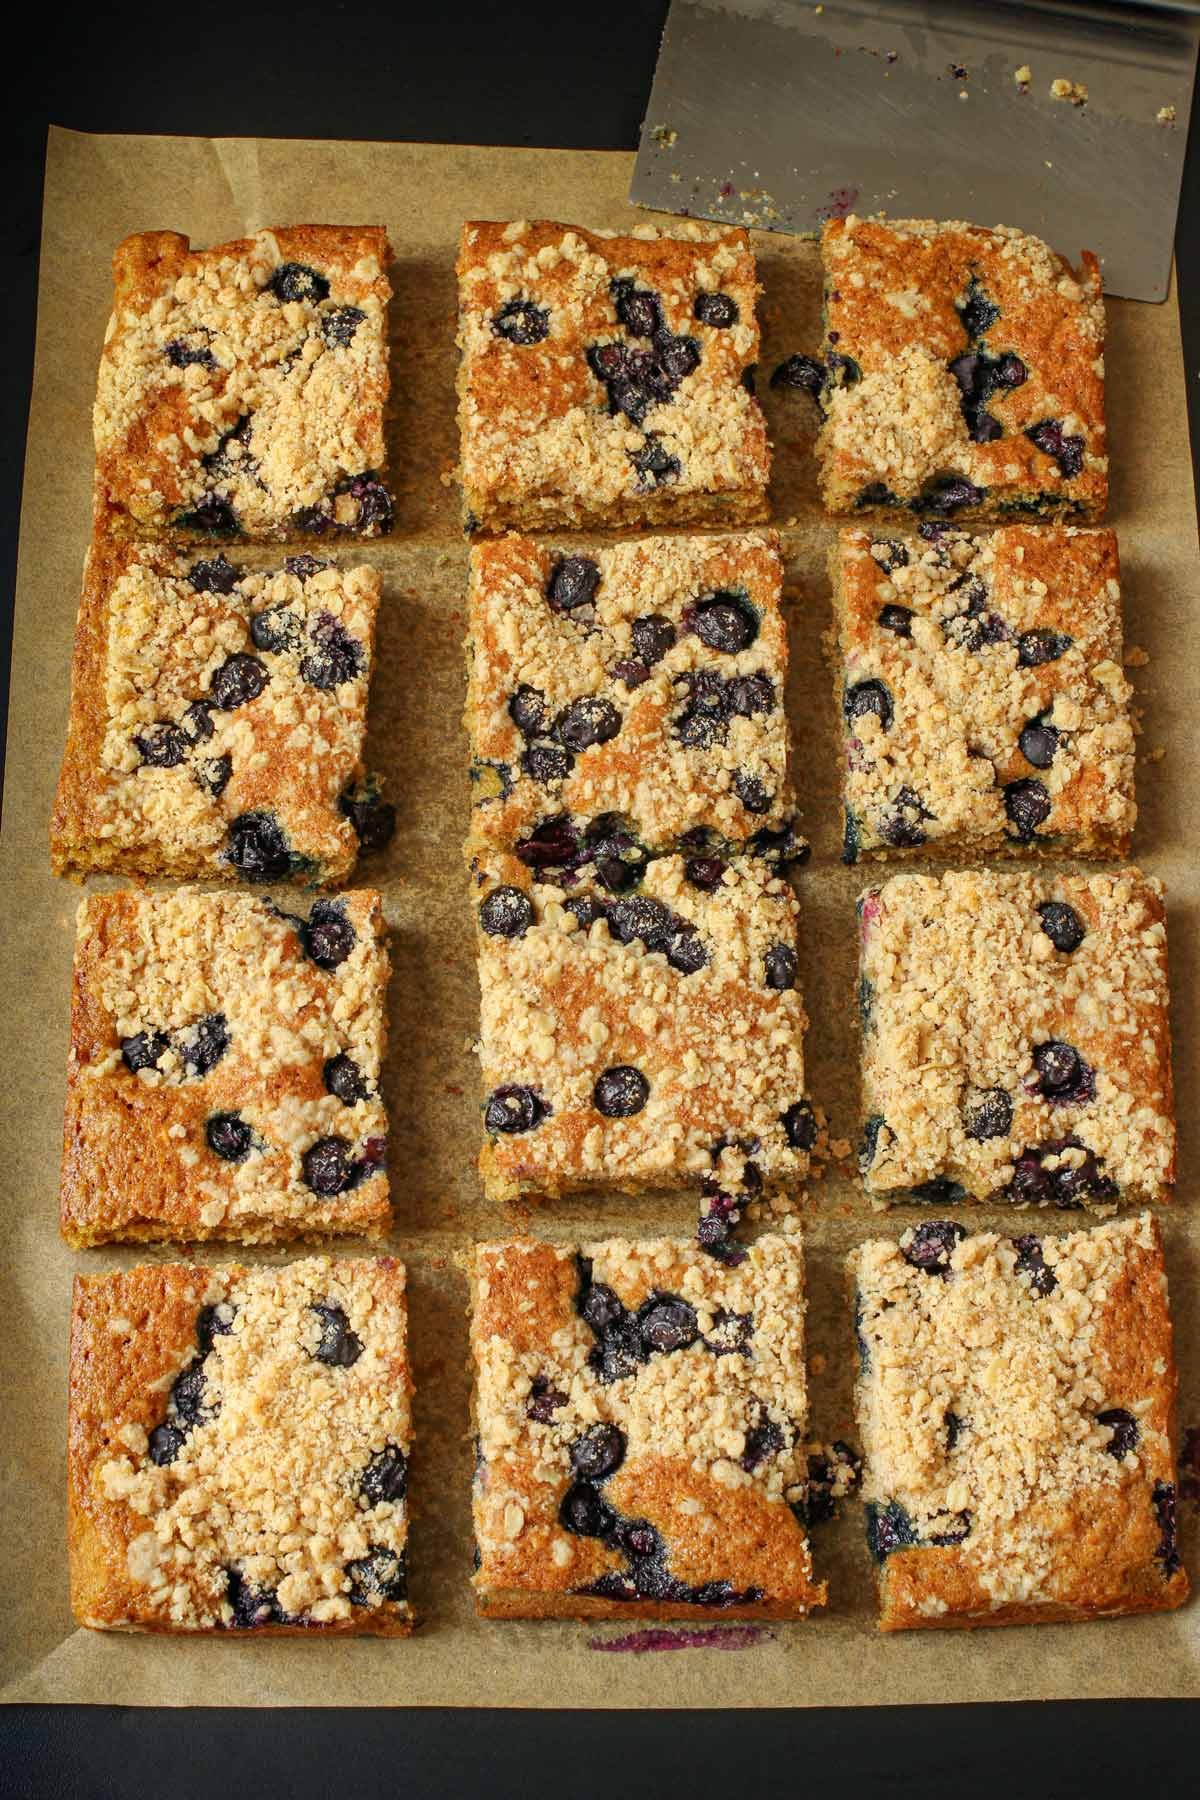 baked Blueberry Lemon Coffee Cake cut into squares on brown parchment paper.